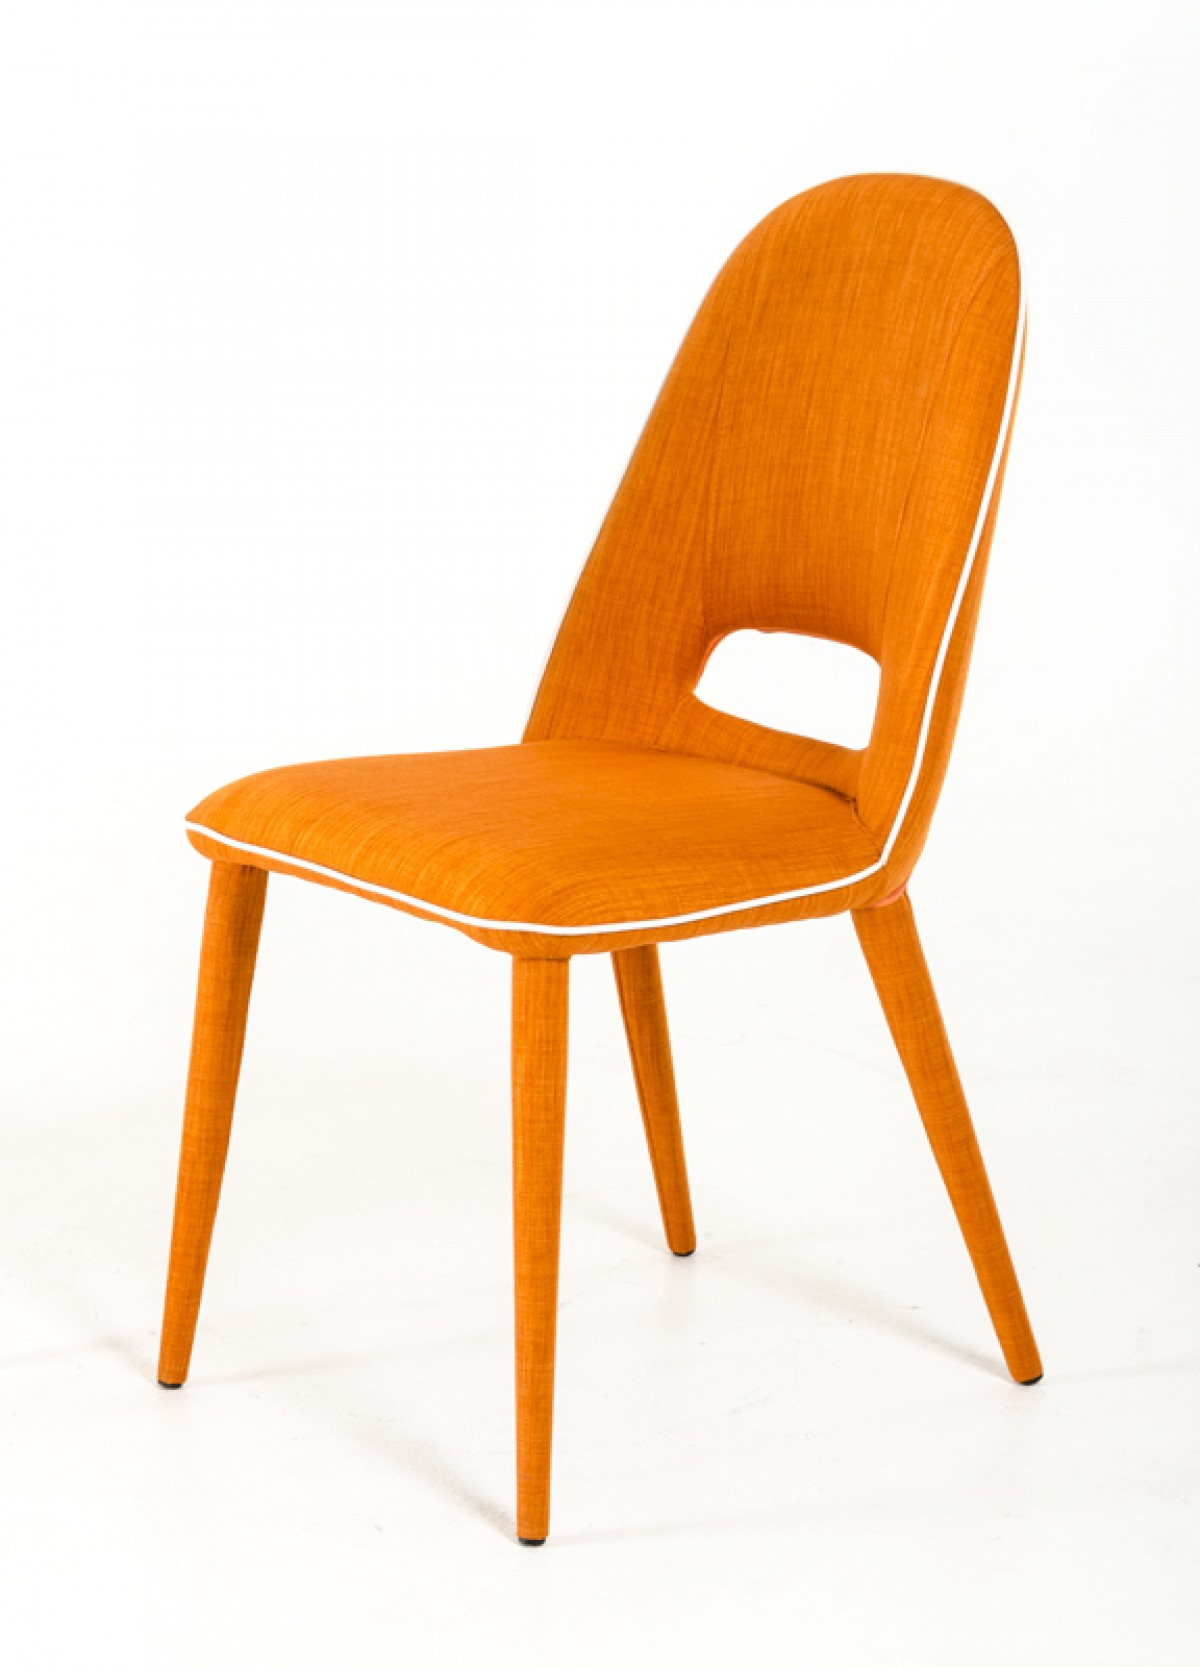 Buy the Kenneth Orange Fabric Dining Chairs at AdvancedInteriorDesigns.com